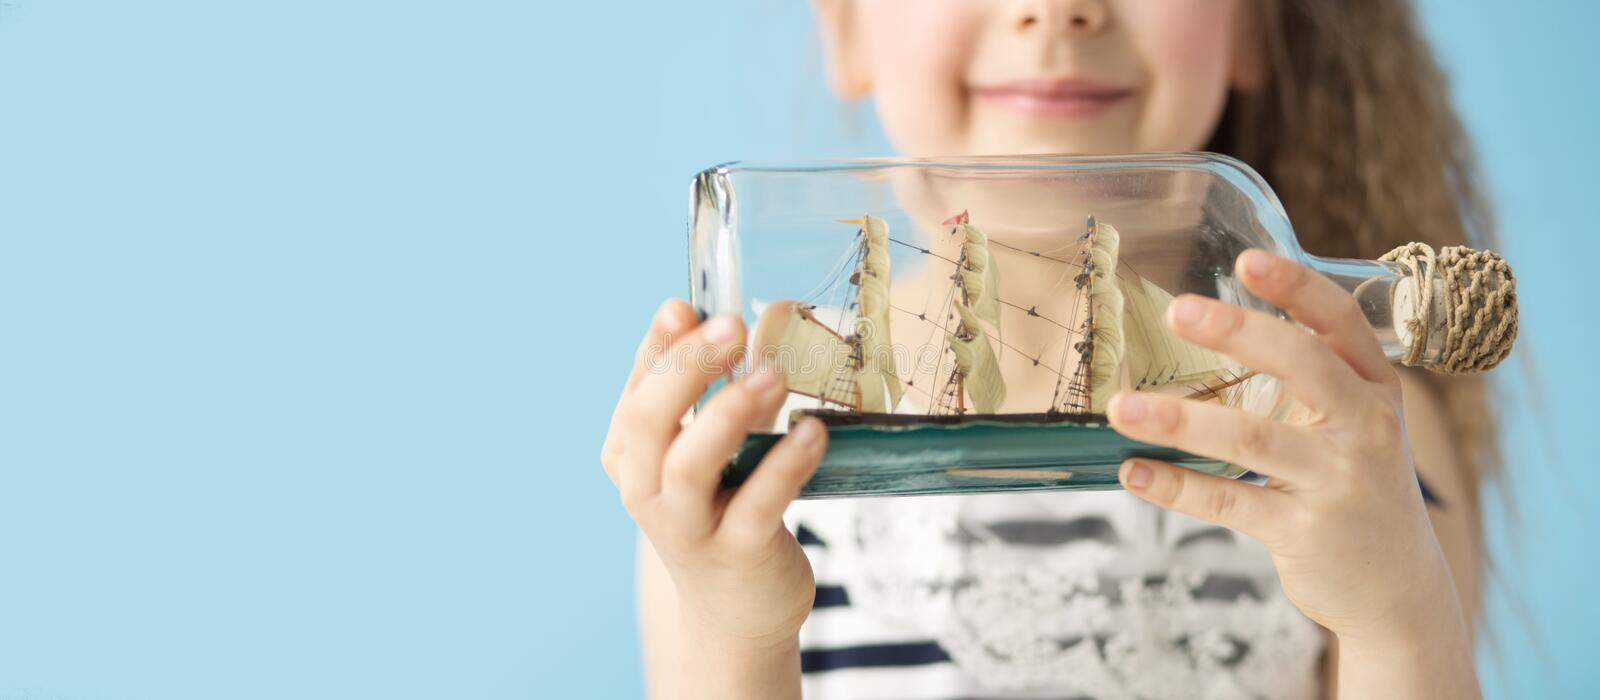 Toy ship in the bottle. Toy ship in the fancy bottle stock photo